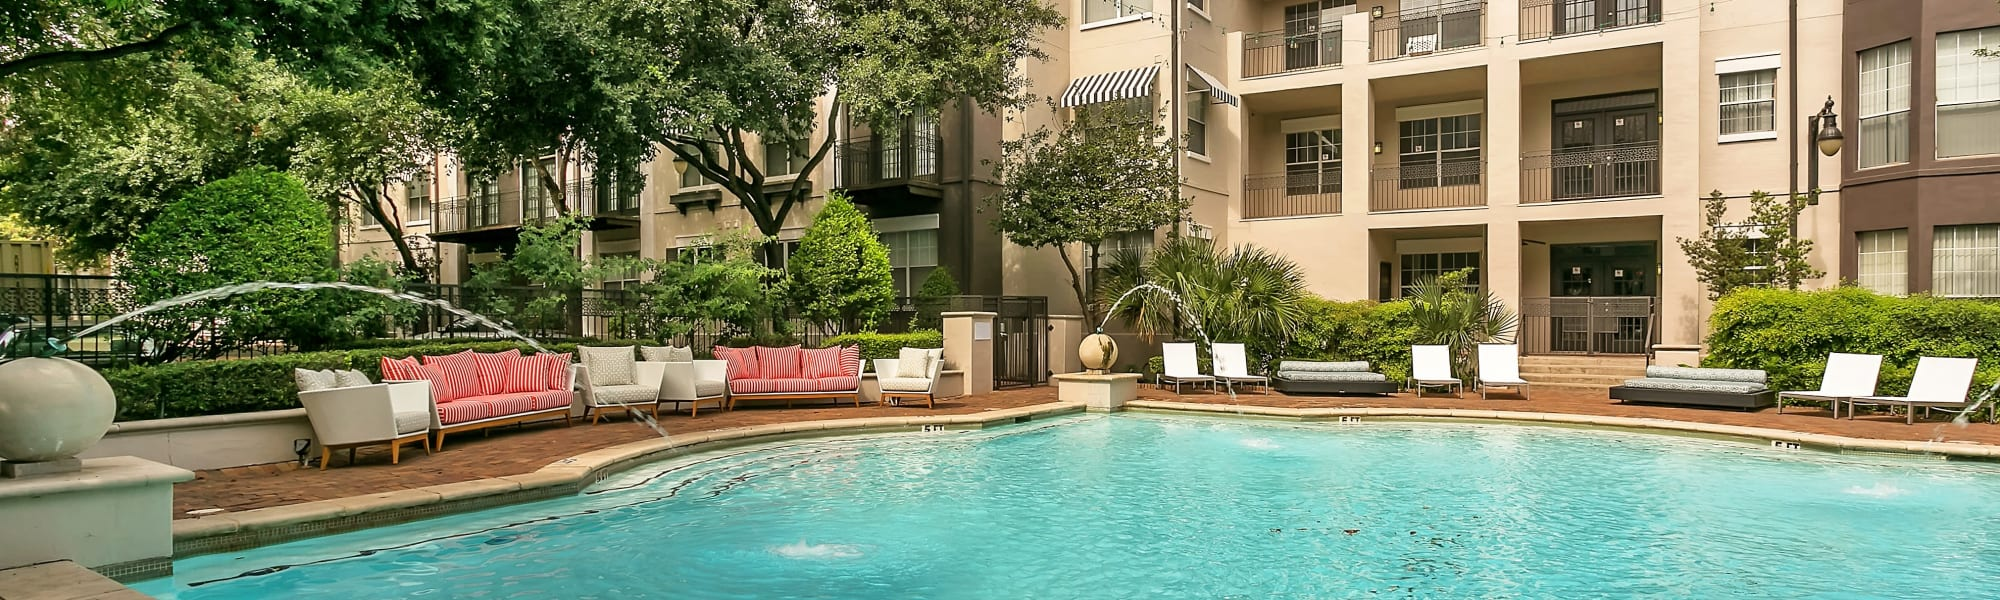 Amenities at Alesio Urban Center in Irving, Texas